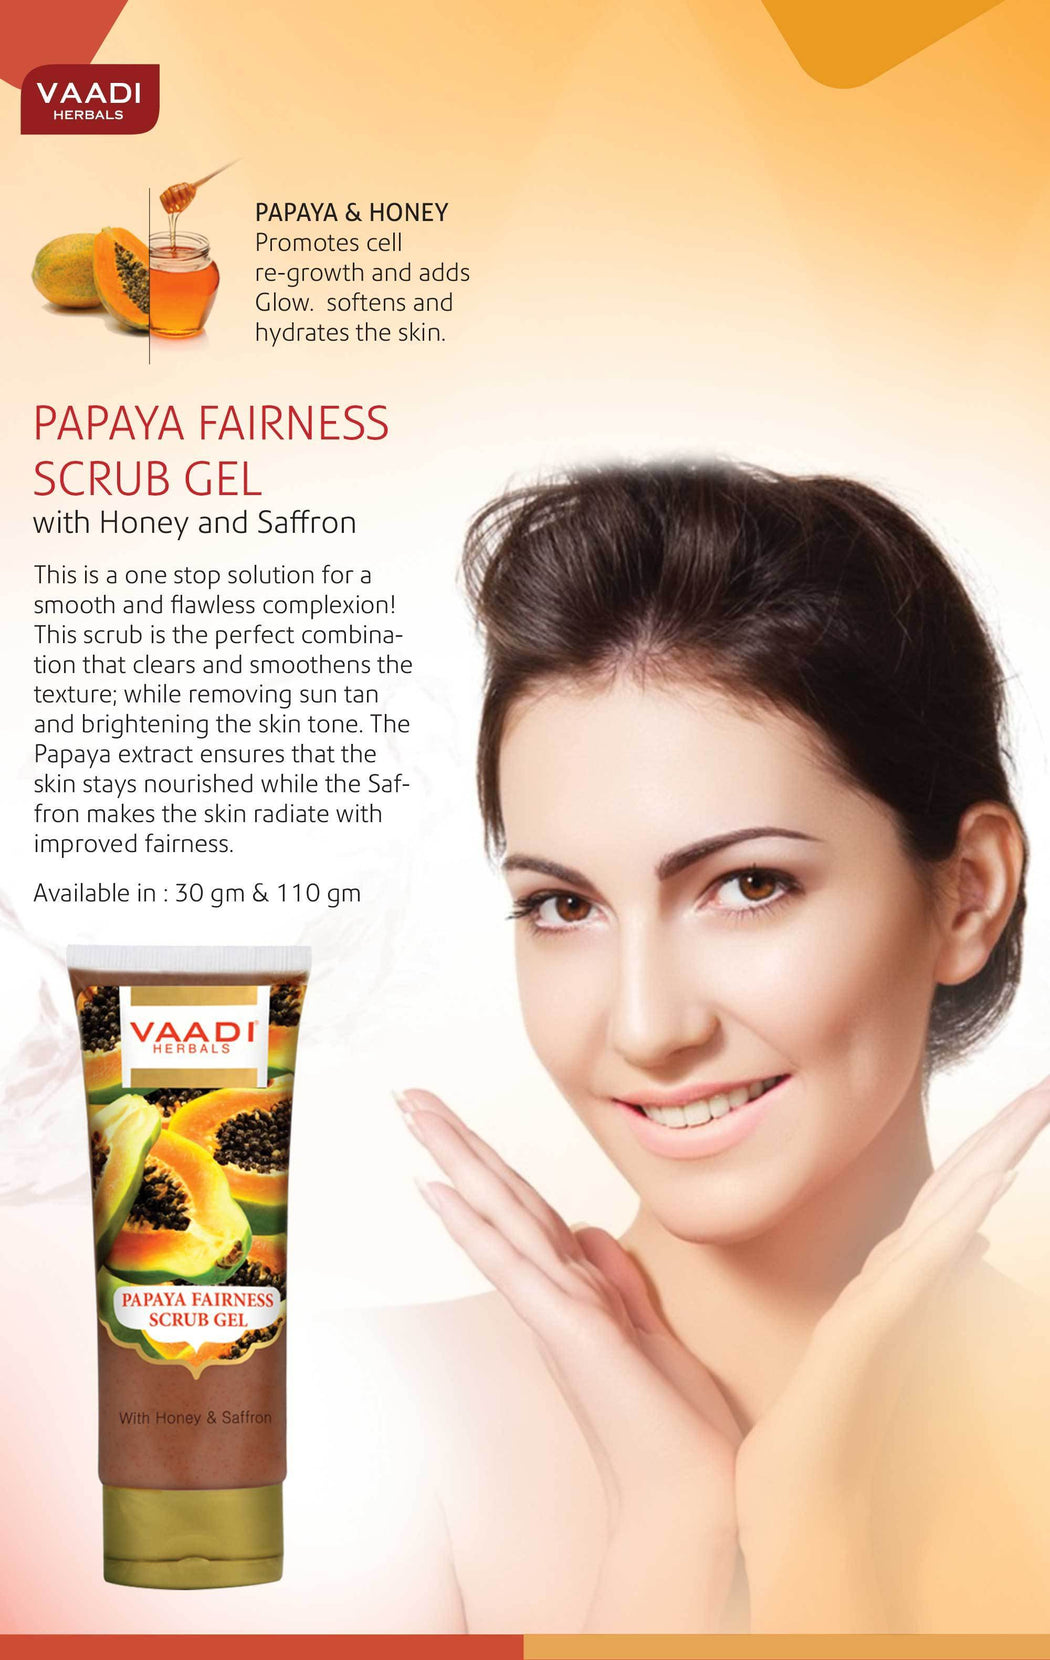 Organic Papaya Fairness Scrub Gel with Honey & Saffron - Lightens Tan - Smoothens Skin Texture - Makes Skin Flawless (110 gms / 4 oz)